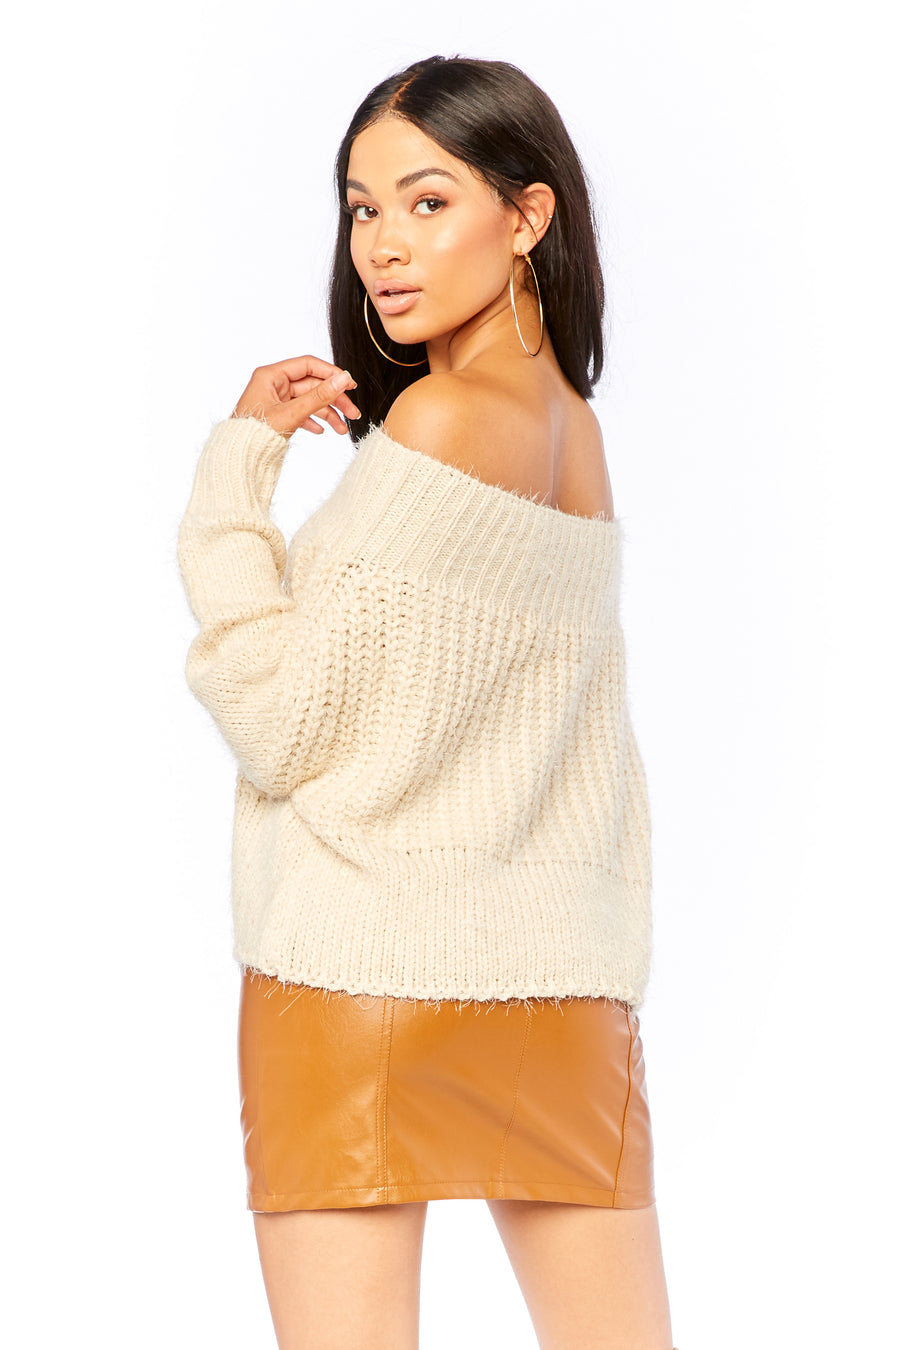 Ophelia Mohair Sweater - HoneyBum